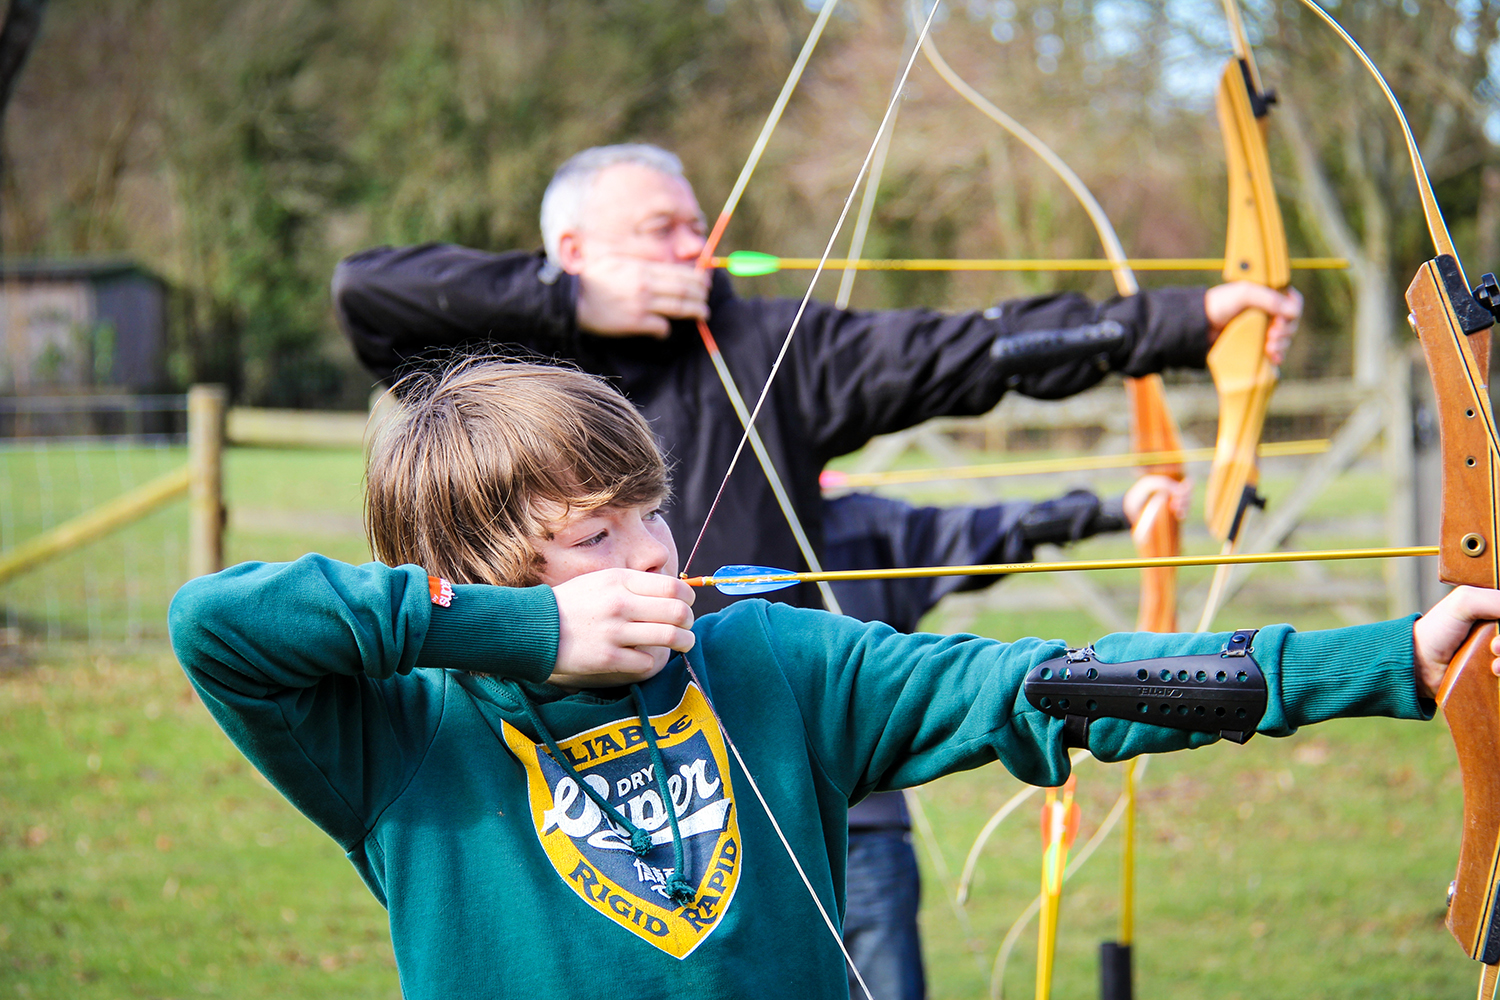 A father and son enjoying a winter archery session.